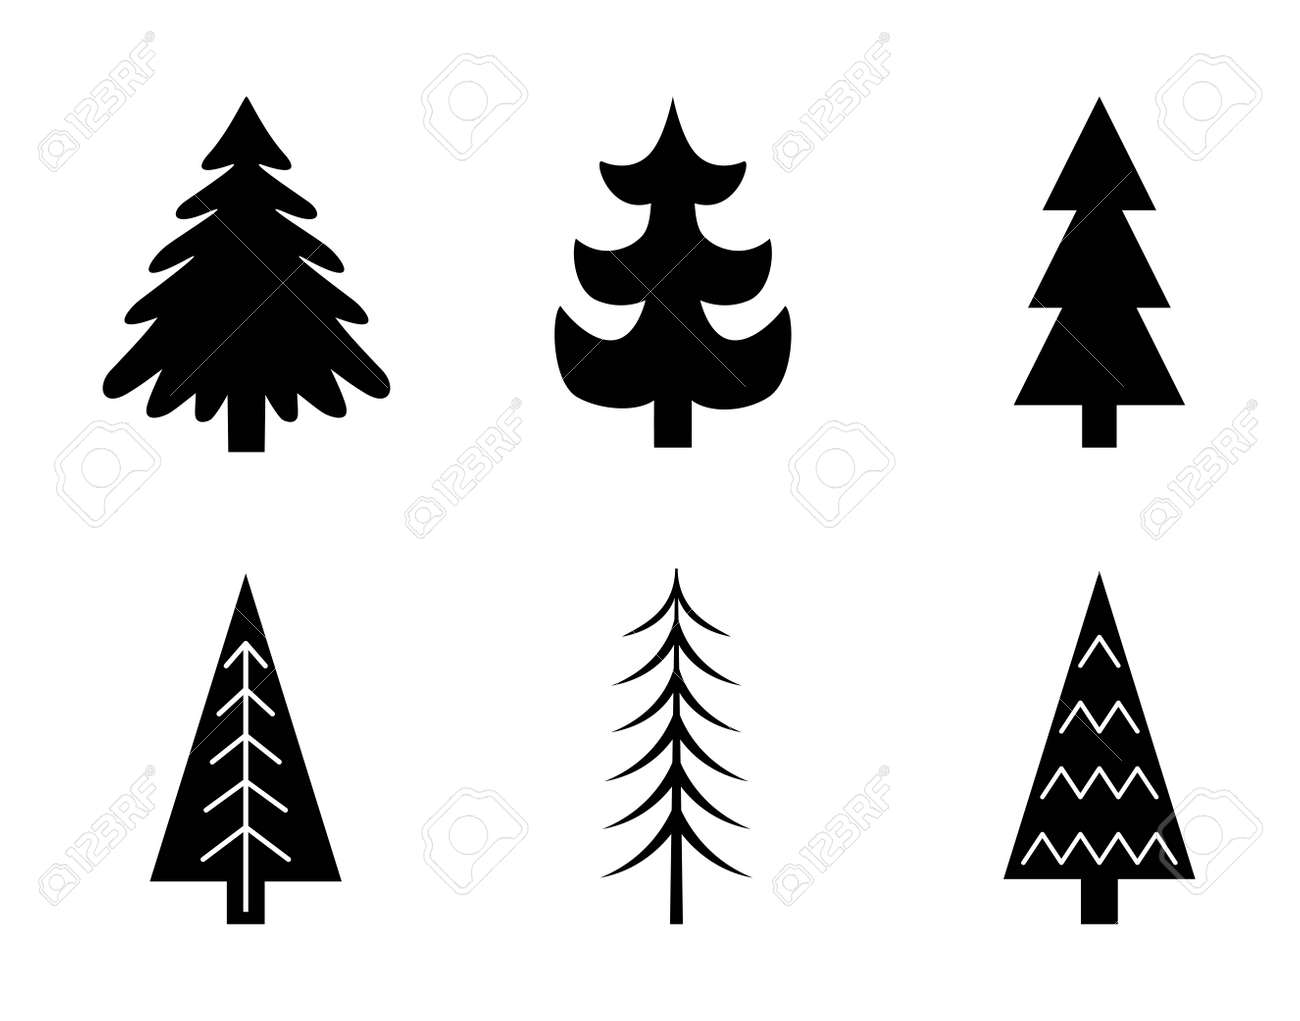 Christmas Tree Vector Image.Christmas Tree Vector Set Blue Tree Vector